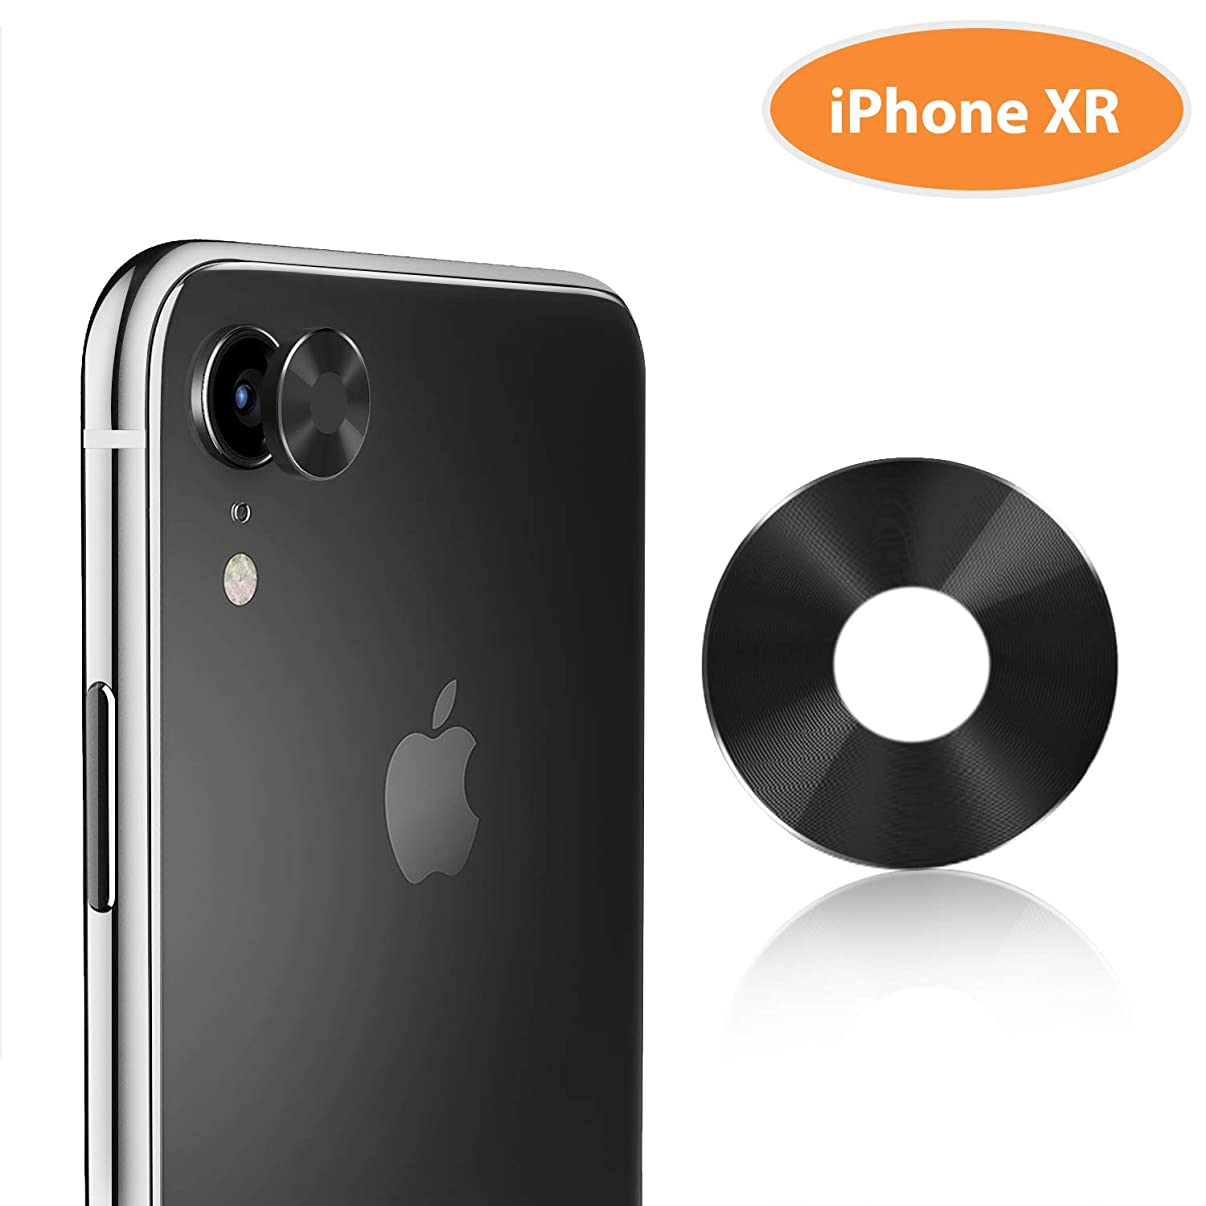 """TINICR iPhone XR Camera Lens Protector Premium Aluminum Alloy Back Rear Camera Lens Screen Cover Case Shield Compatible for iPhone XR 6.1"""" (2018), Black"""